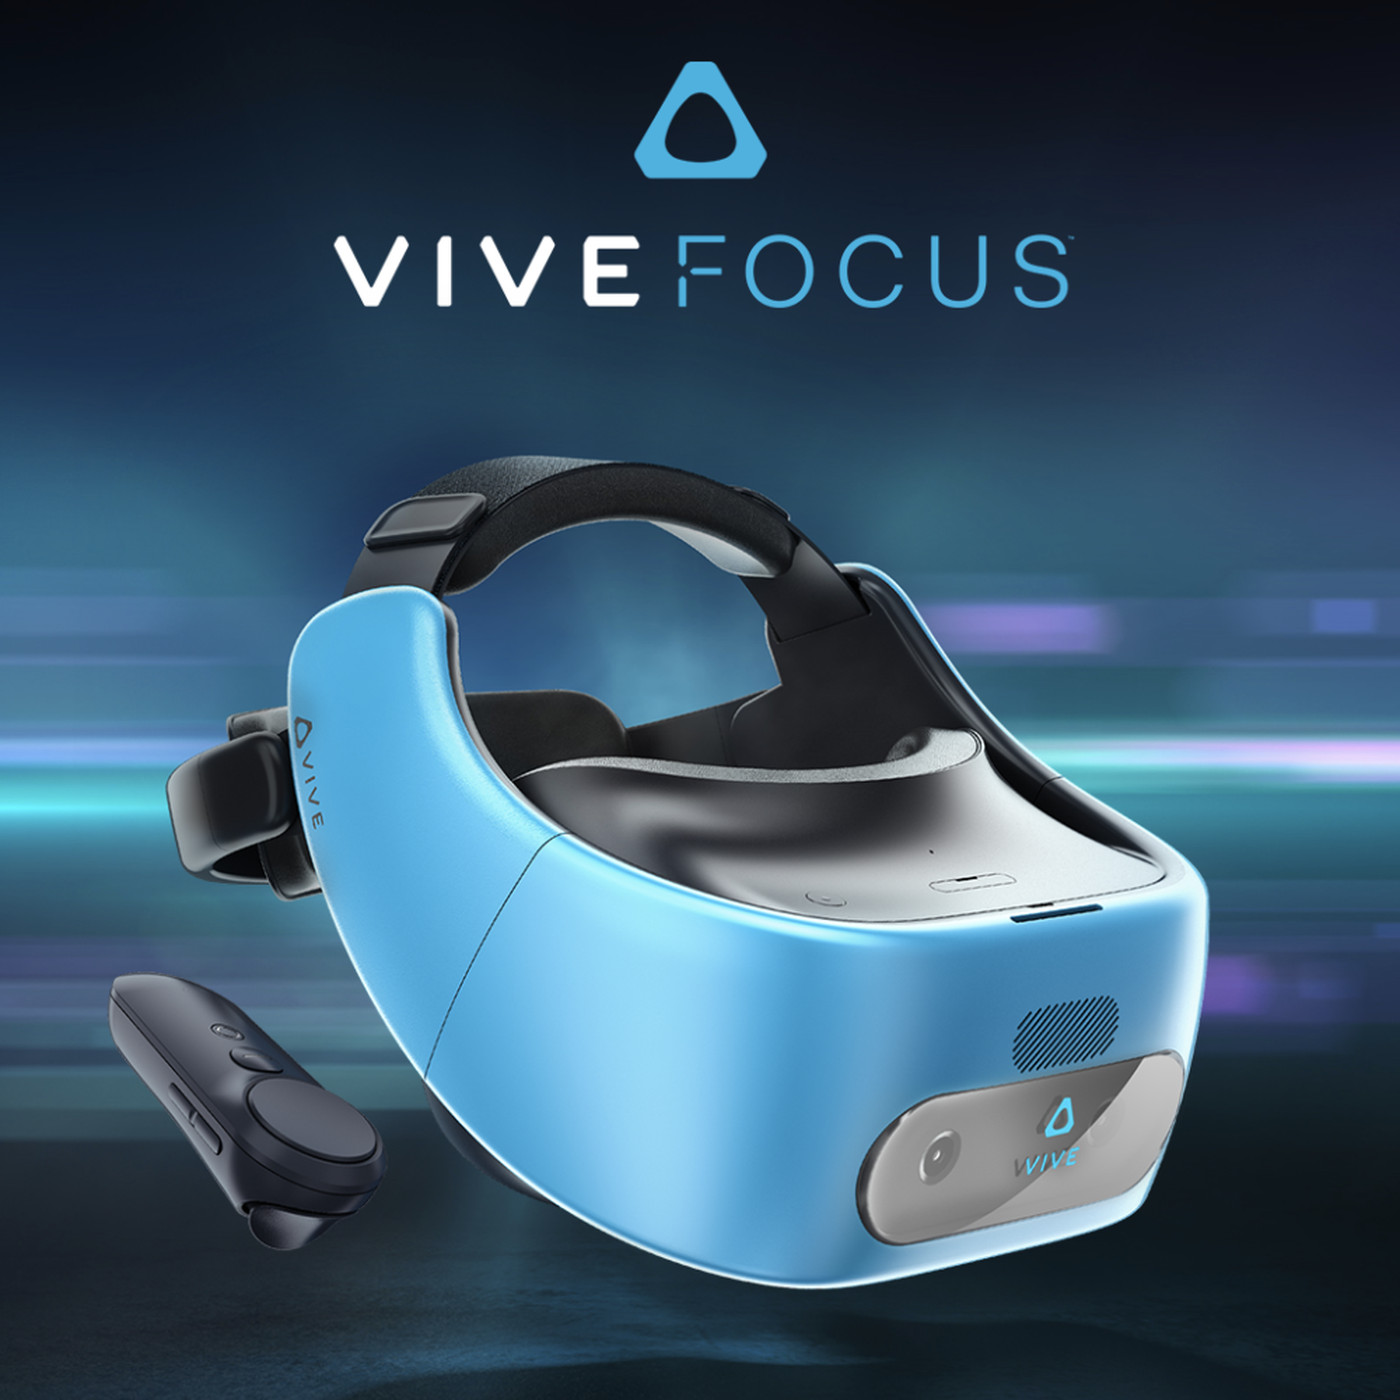 fd6d336af17 HTC s China-exclusive Vive Focus VR headset is now launching worldwide